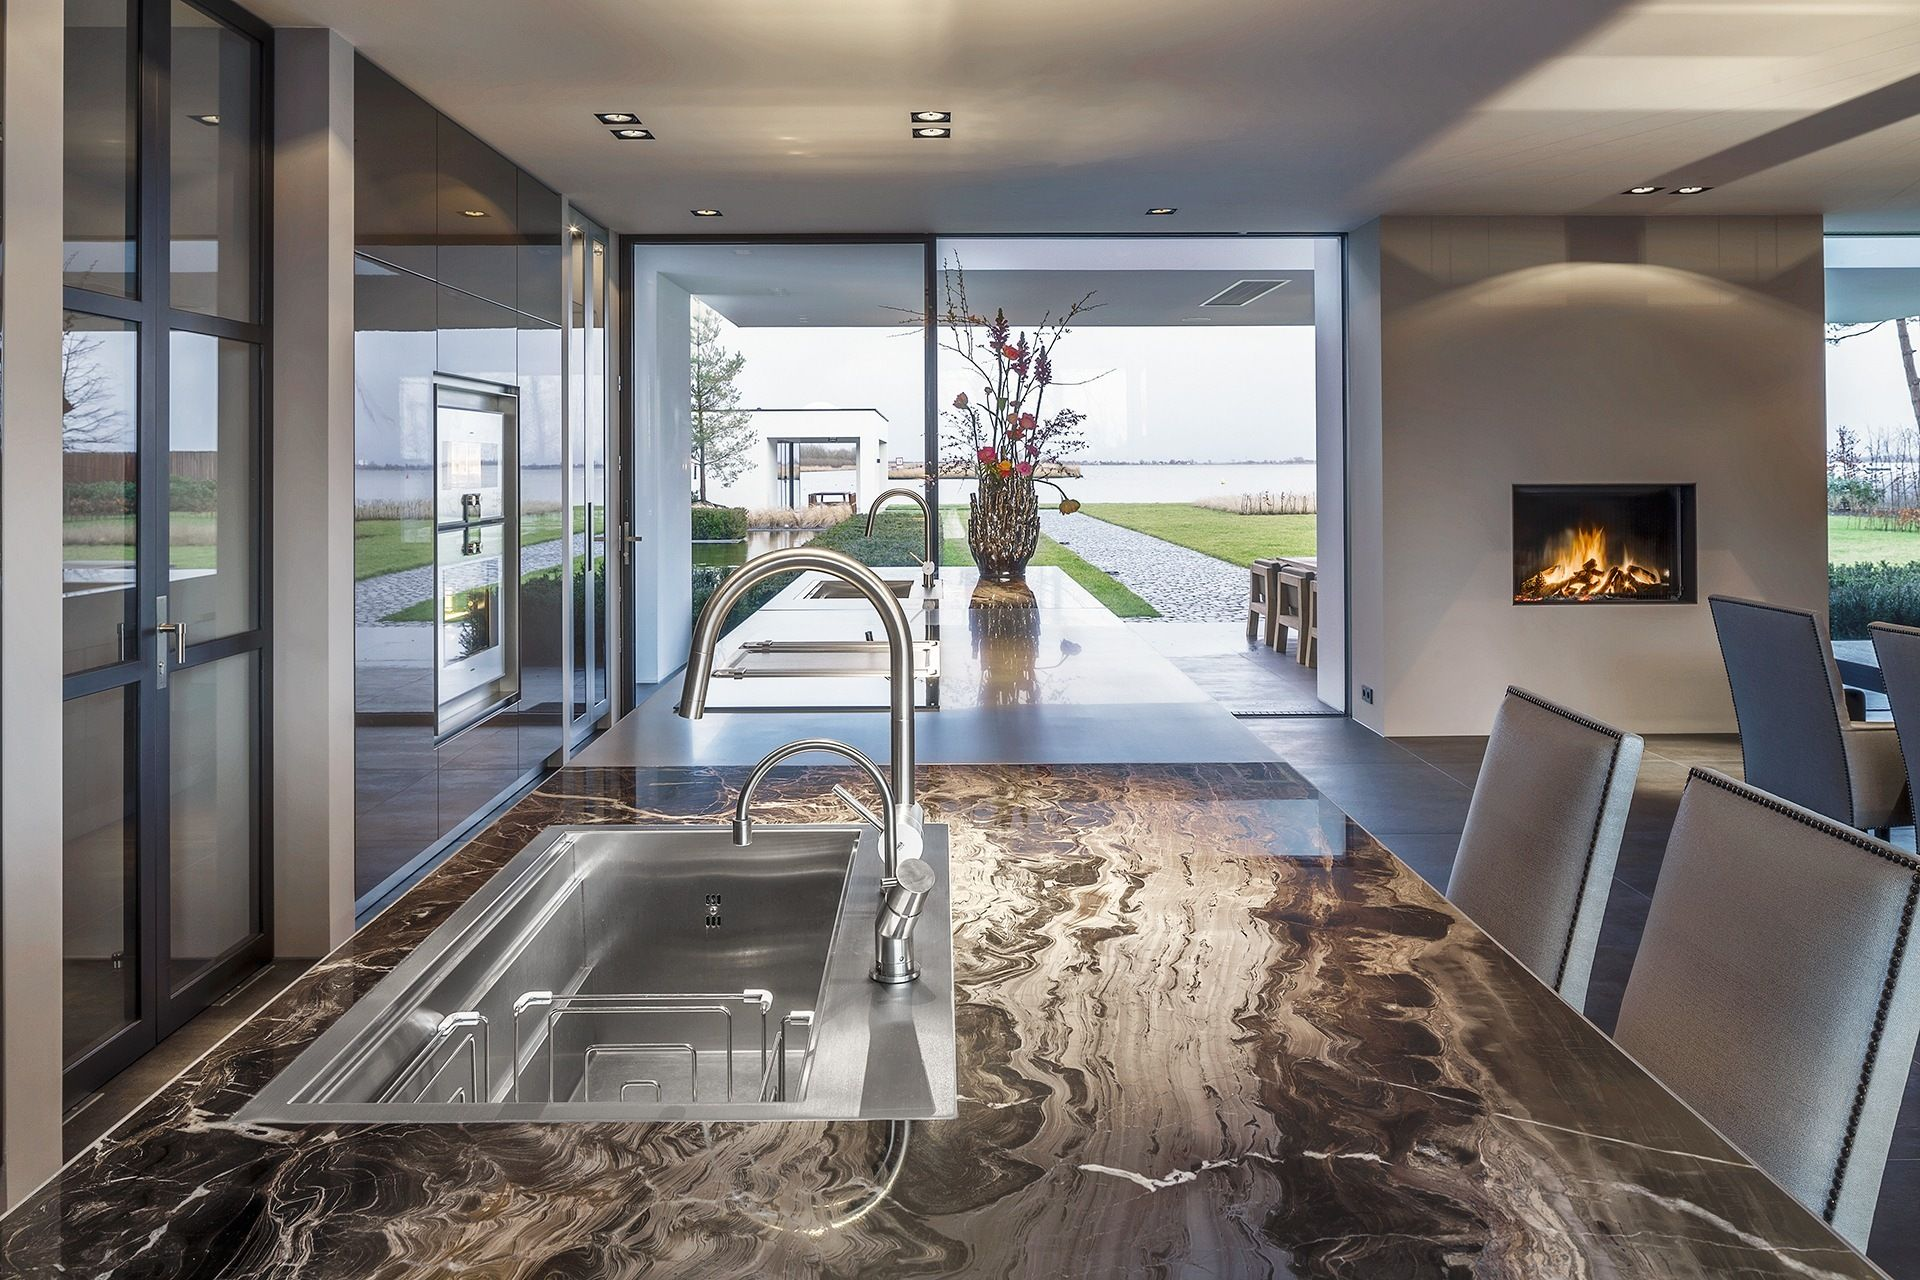 High End Kitchen Design Unique Culimaat  High End Kitchens  Interiors  Italiaanse Keukens En Decorating Inspiration